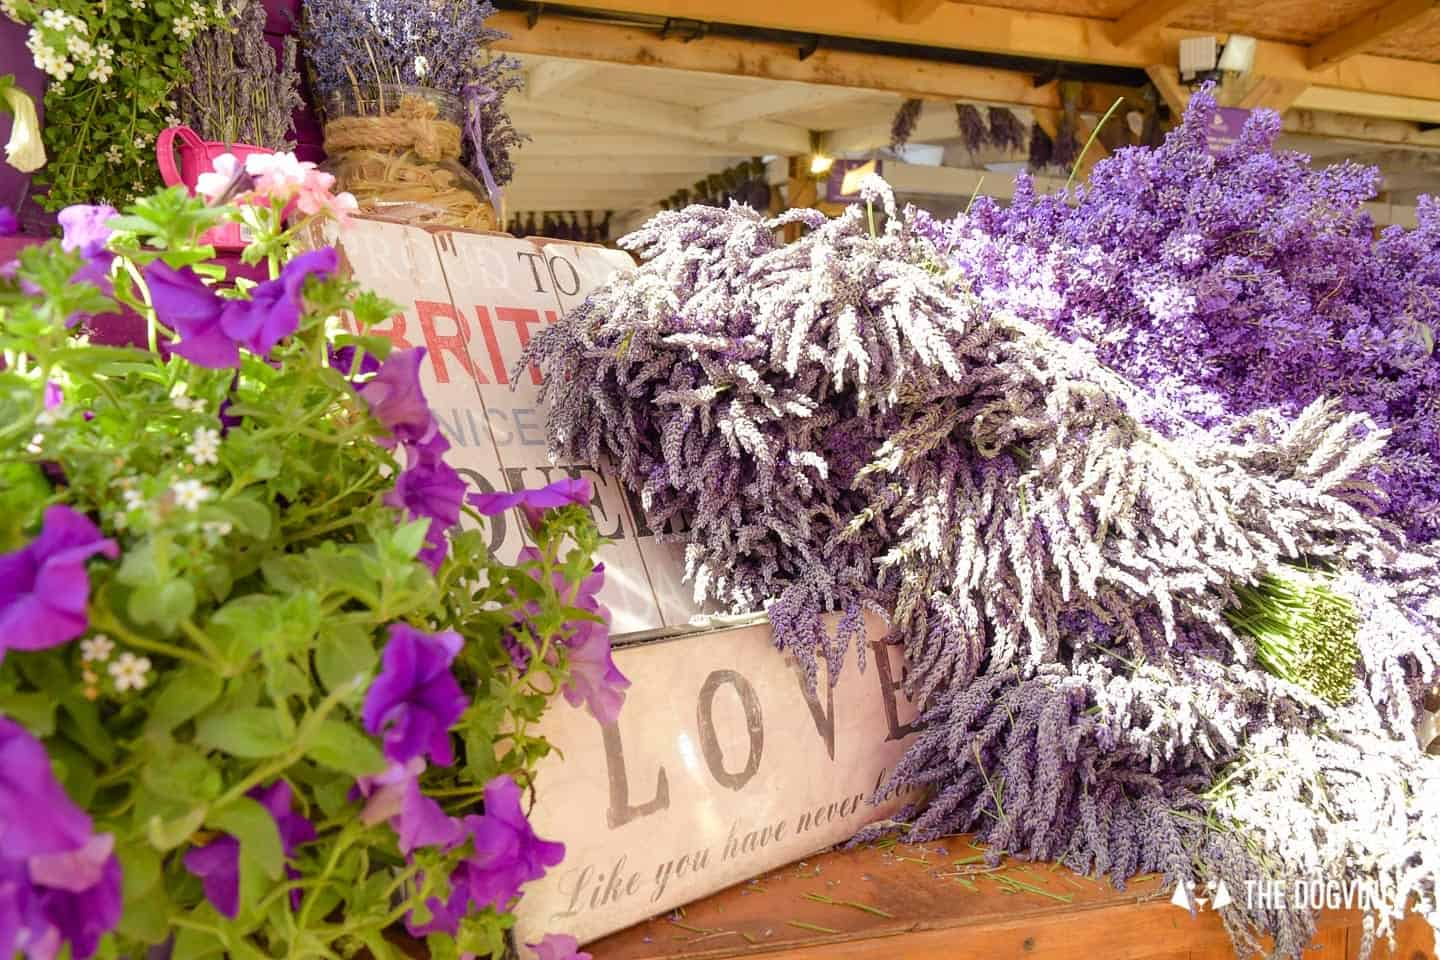 Lavender in the Mayfield Lavender Farm Gift Shop